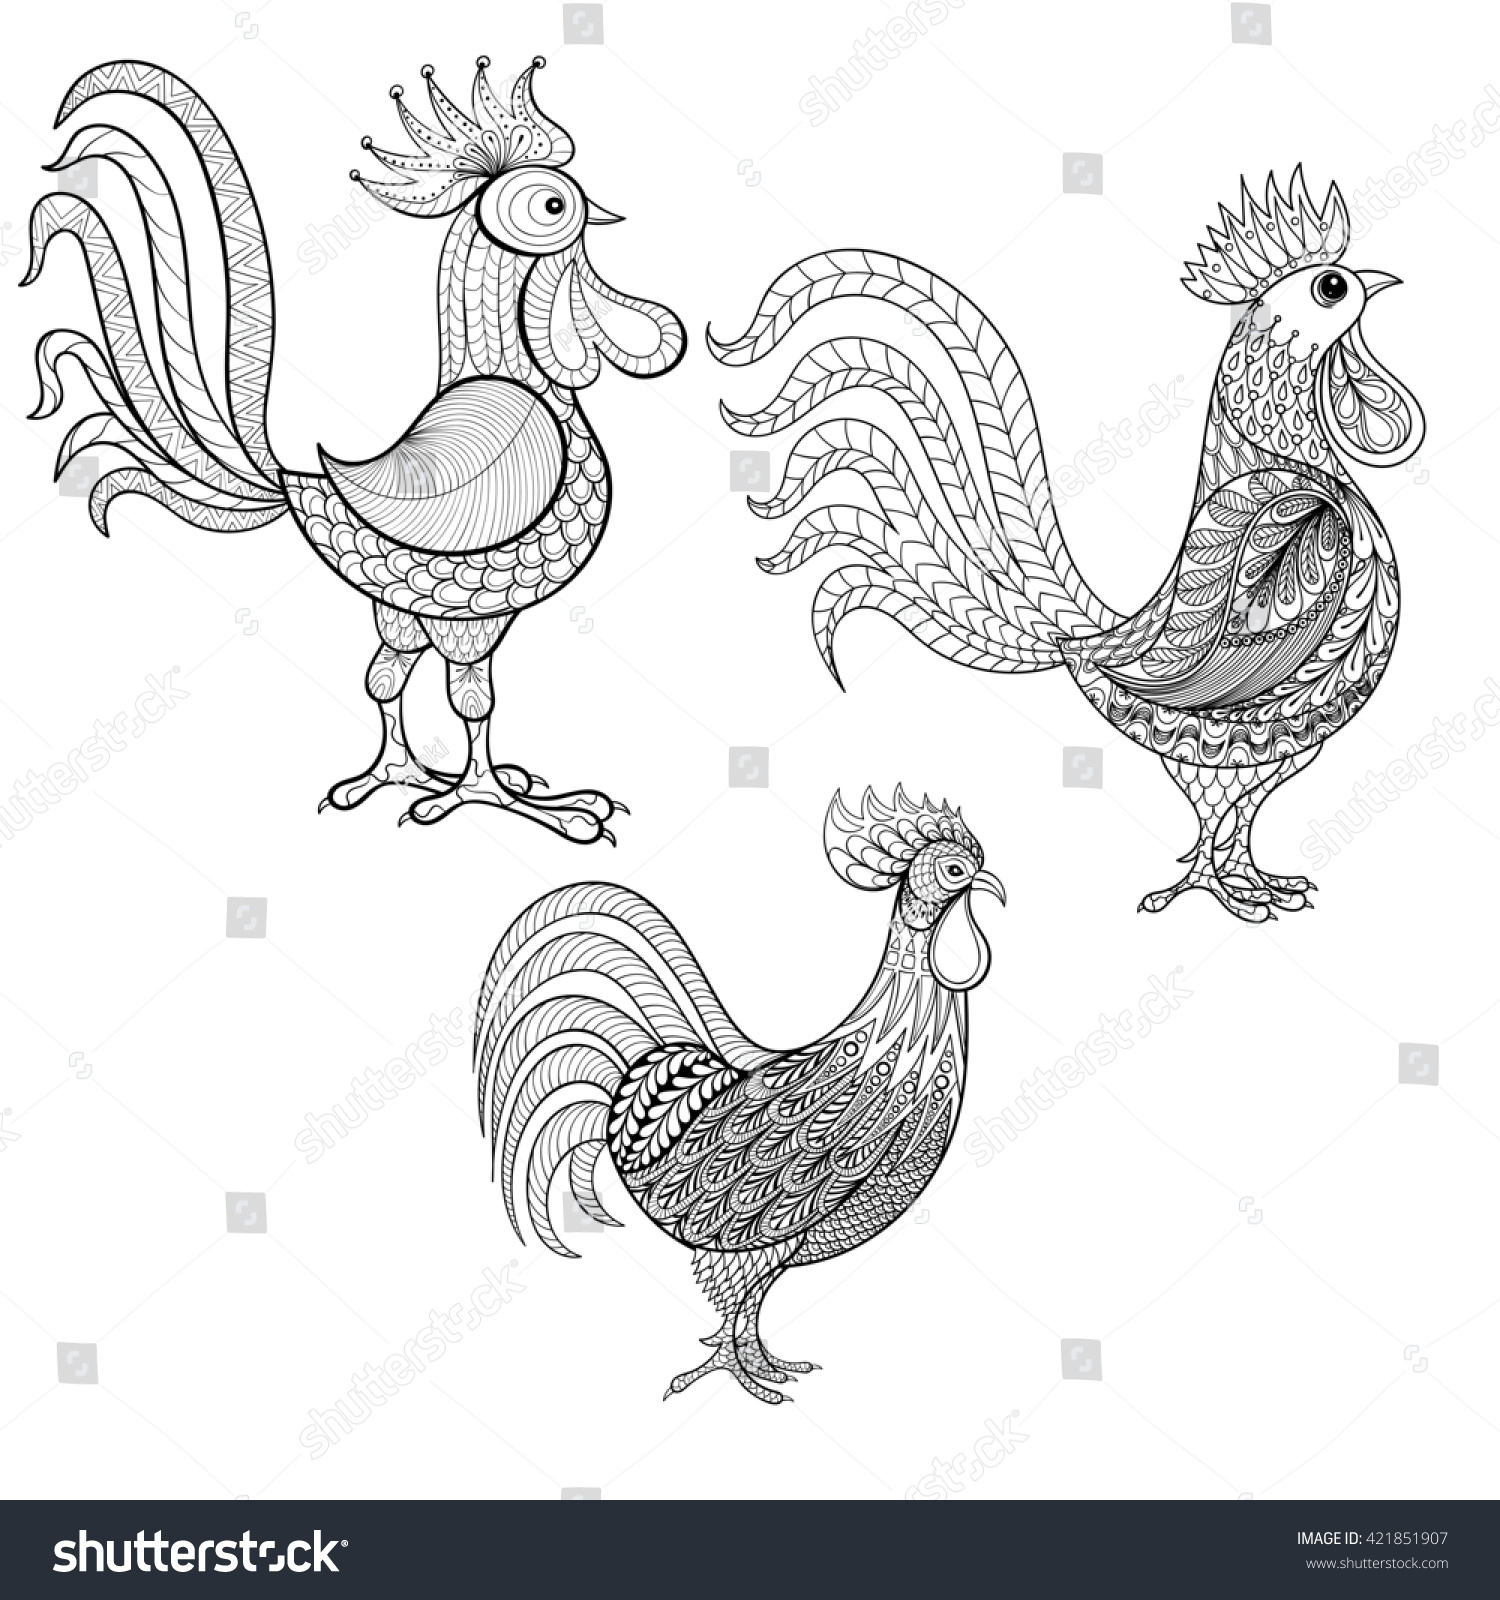 Chinese new year animal coloring pages - Set Cocks Roosters New Year 2017 Symbol Zentangle Domestic Farmer Birds For Adult